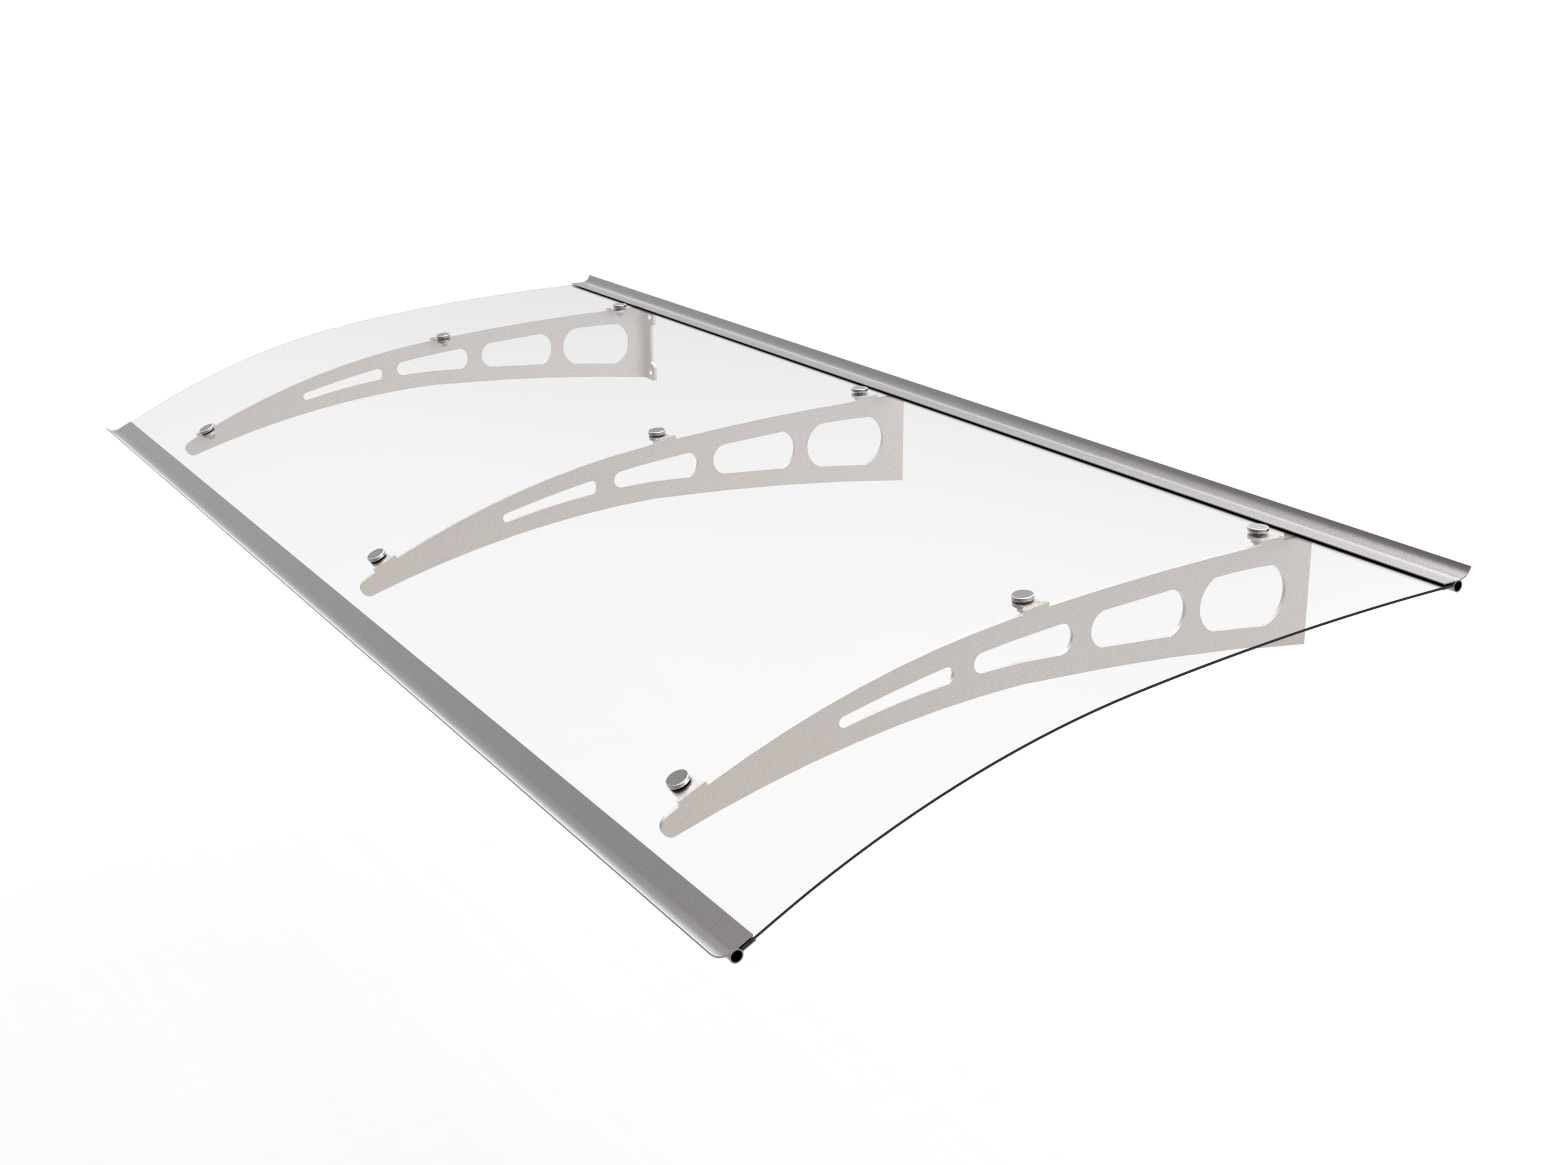 Door Polycarbonate Awning Pa Series